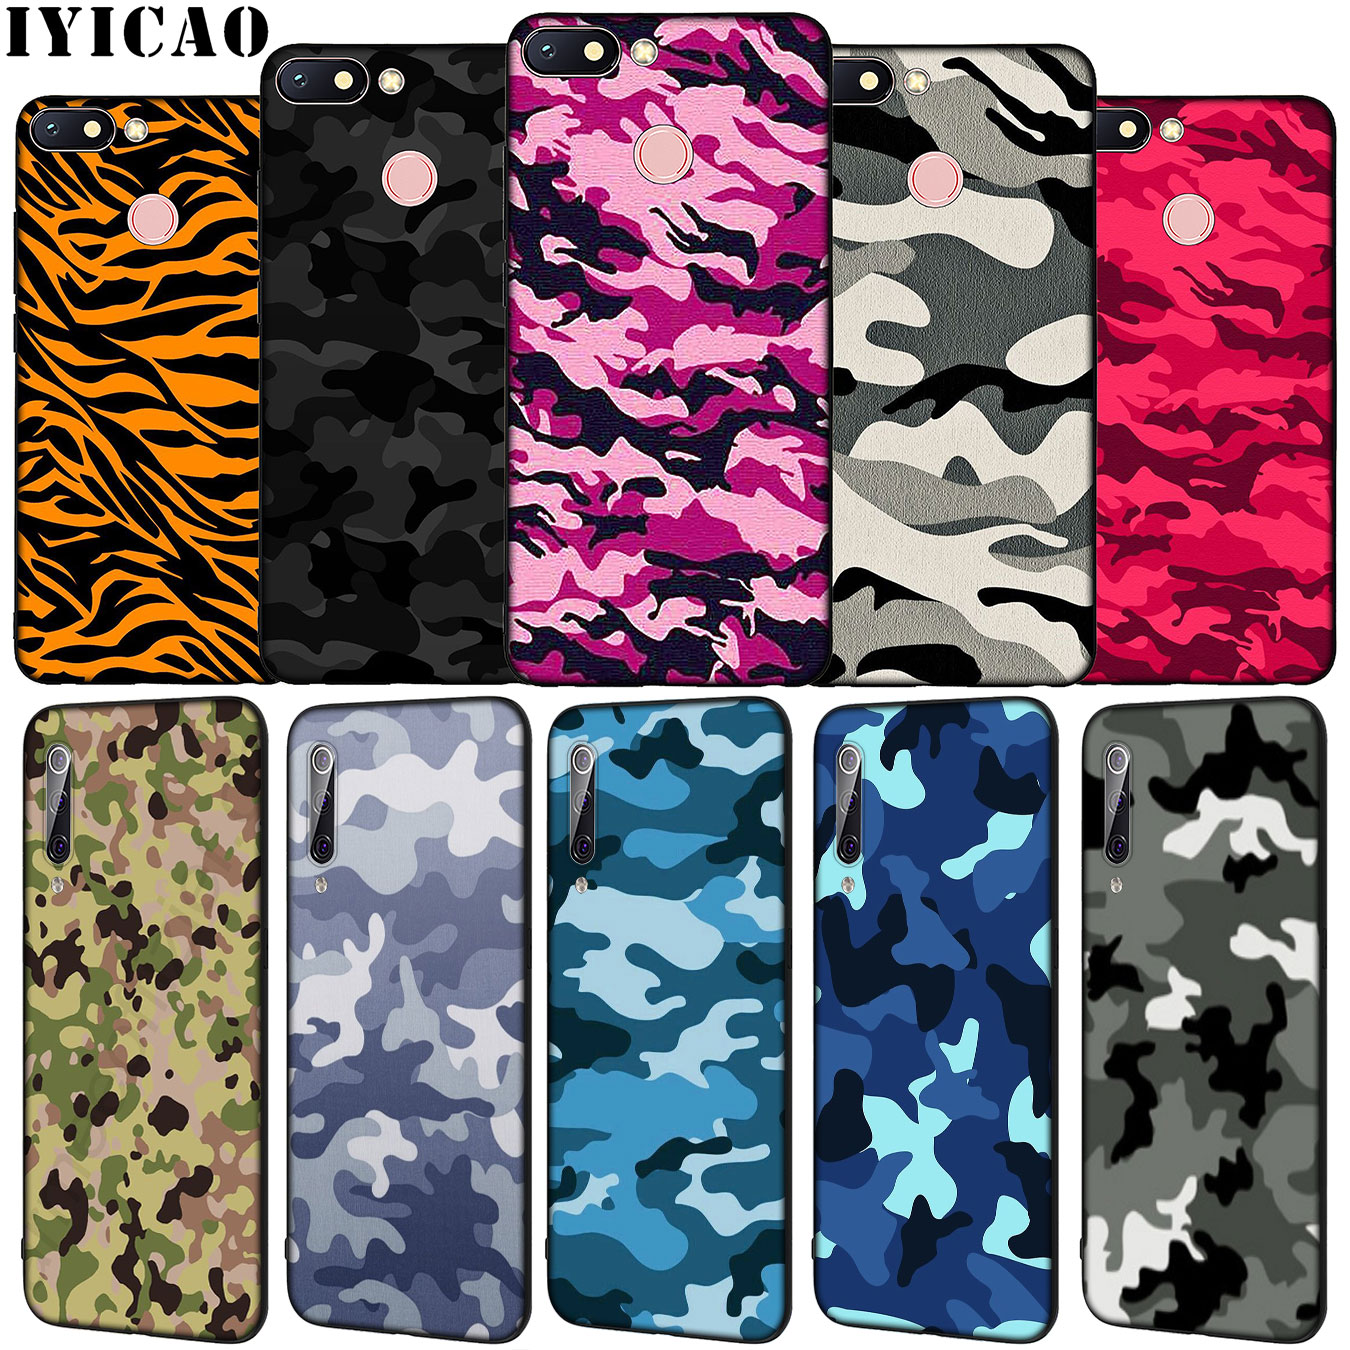 IYICAO Camouflage Muster Camo militär Armee Weiche Silikon Fall für <font><b>Xiaomi</b></font> <font><b>Redmi</b></font> 8A 7A 6A 5A K20 S2 4A <font><b>4X</b></font> hinweis 8 7 6 Pro 5 Plus image